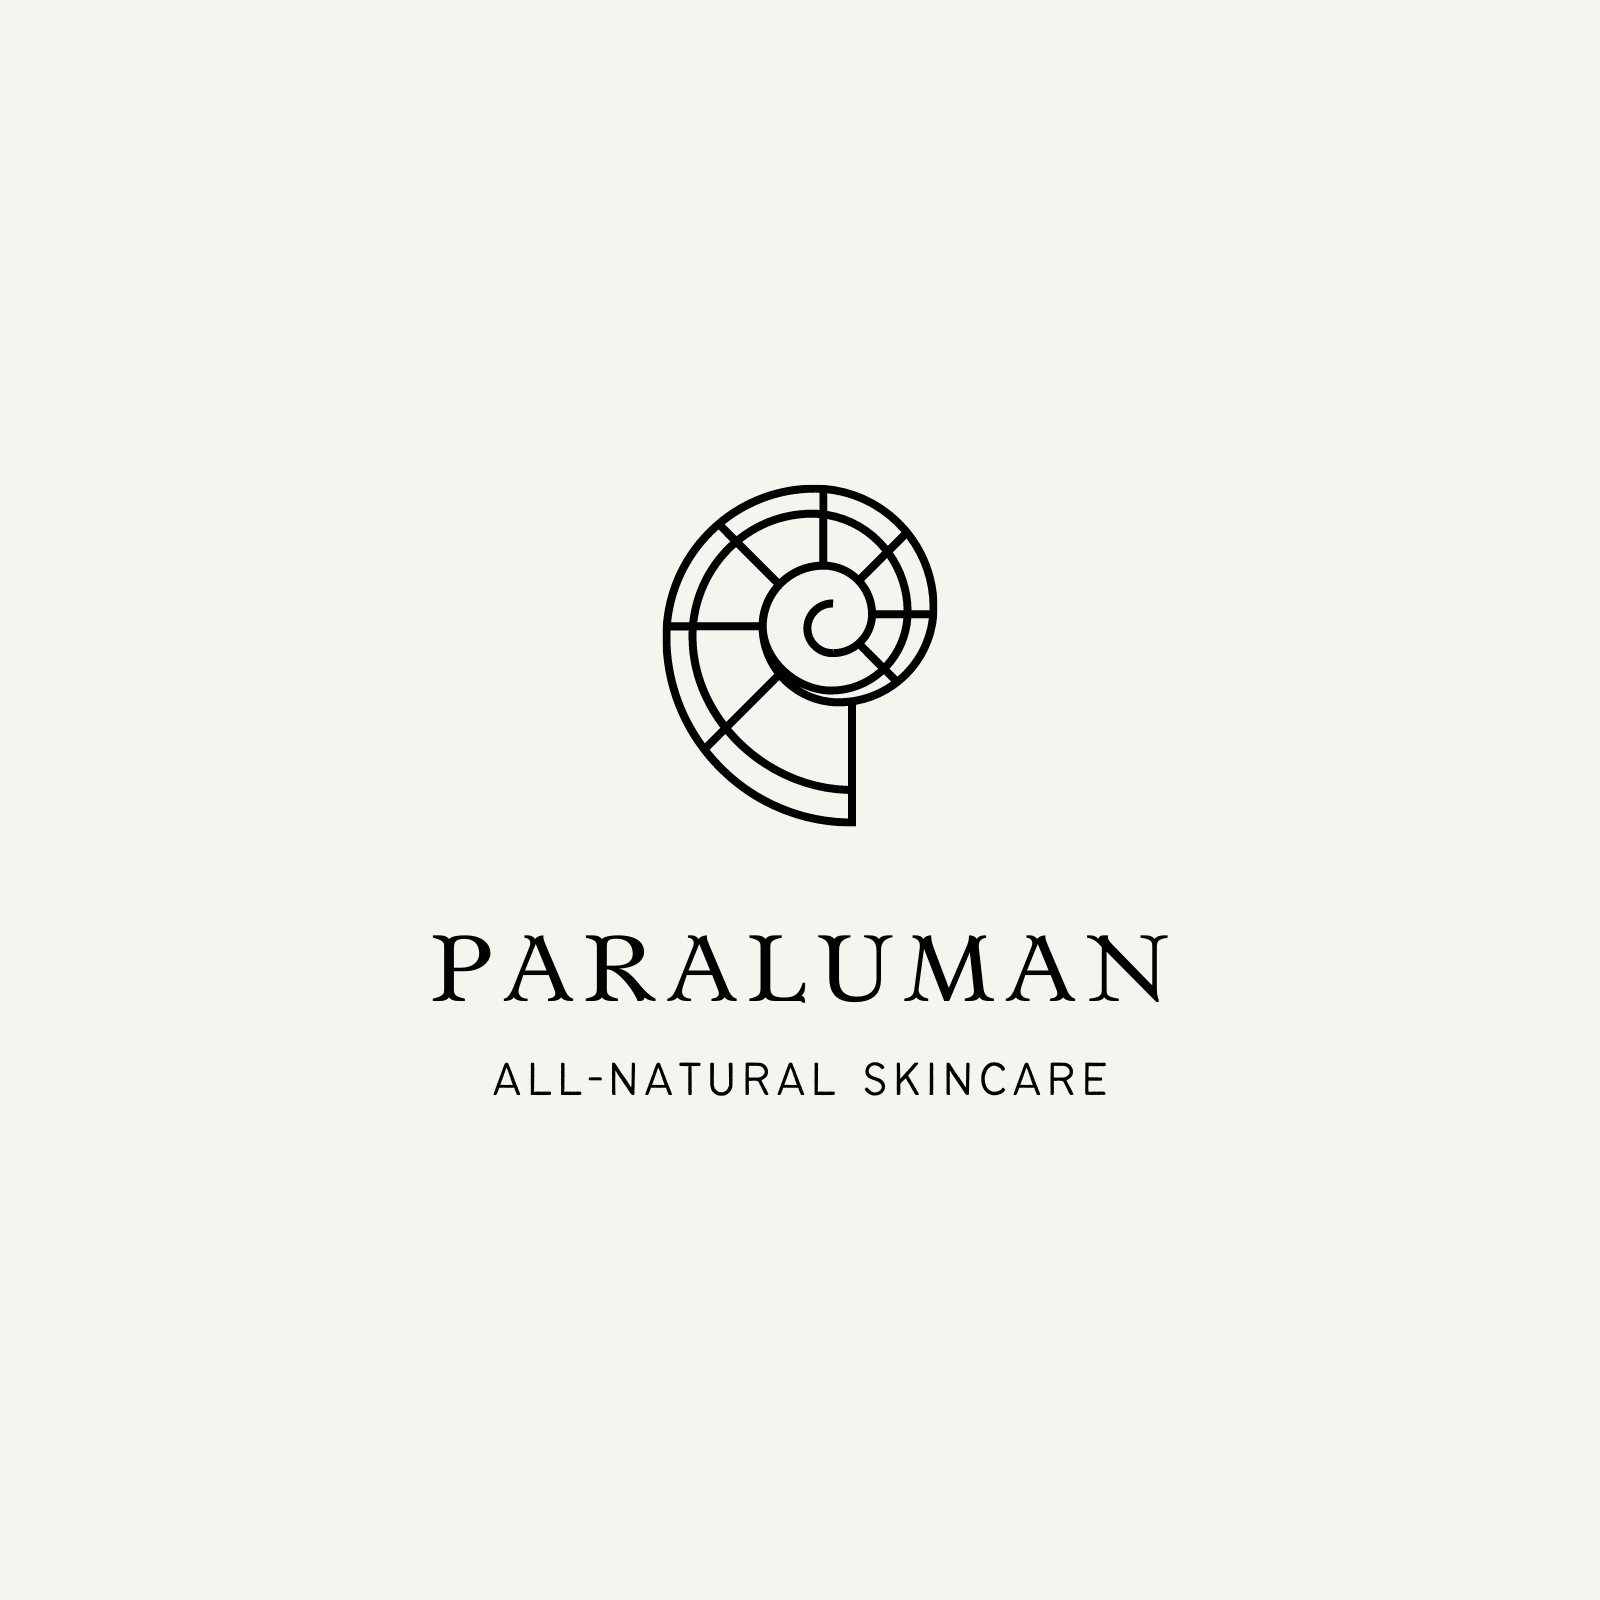 Cream and Black Paraluman Skincare Logo